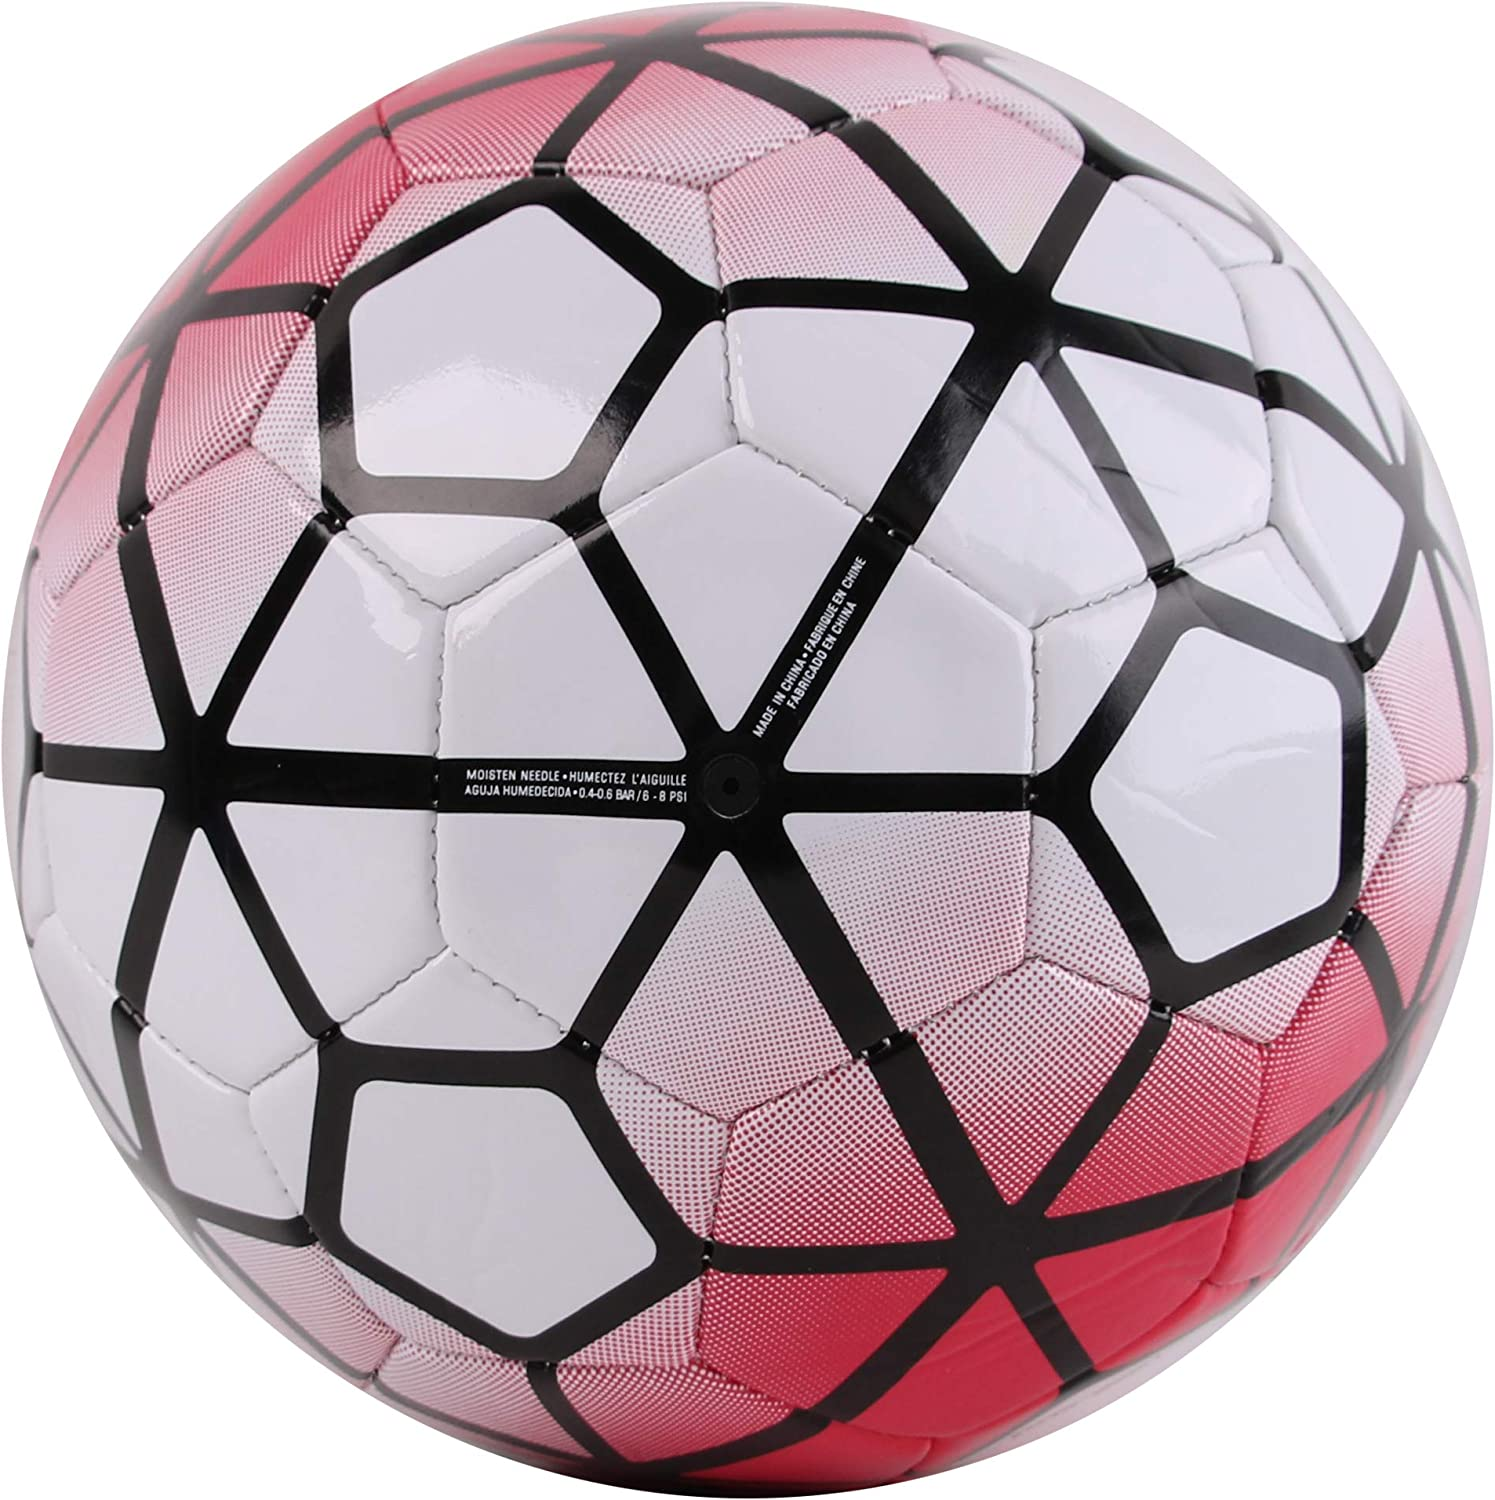 Top Grade 32 Panels and Machine Stitched for Outdoor All Weather PVC Pro Impact Training Soccer Ball Attractive Design Durable Professional Matches Sports Official Size : 5